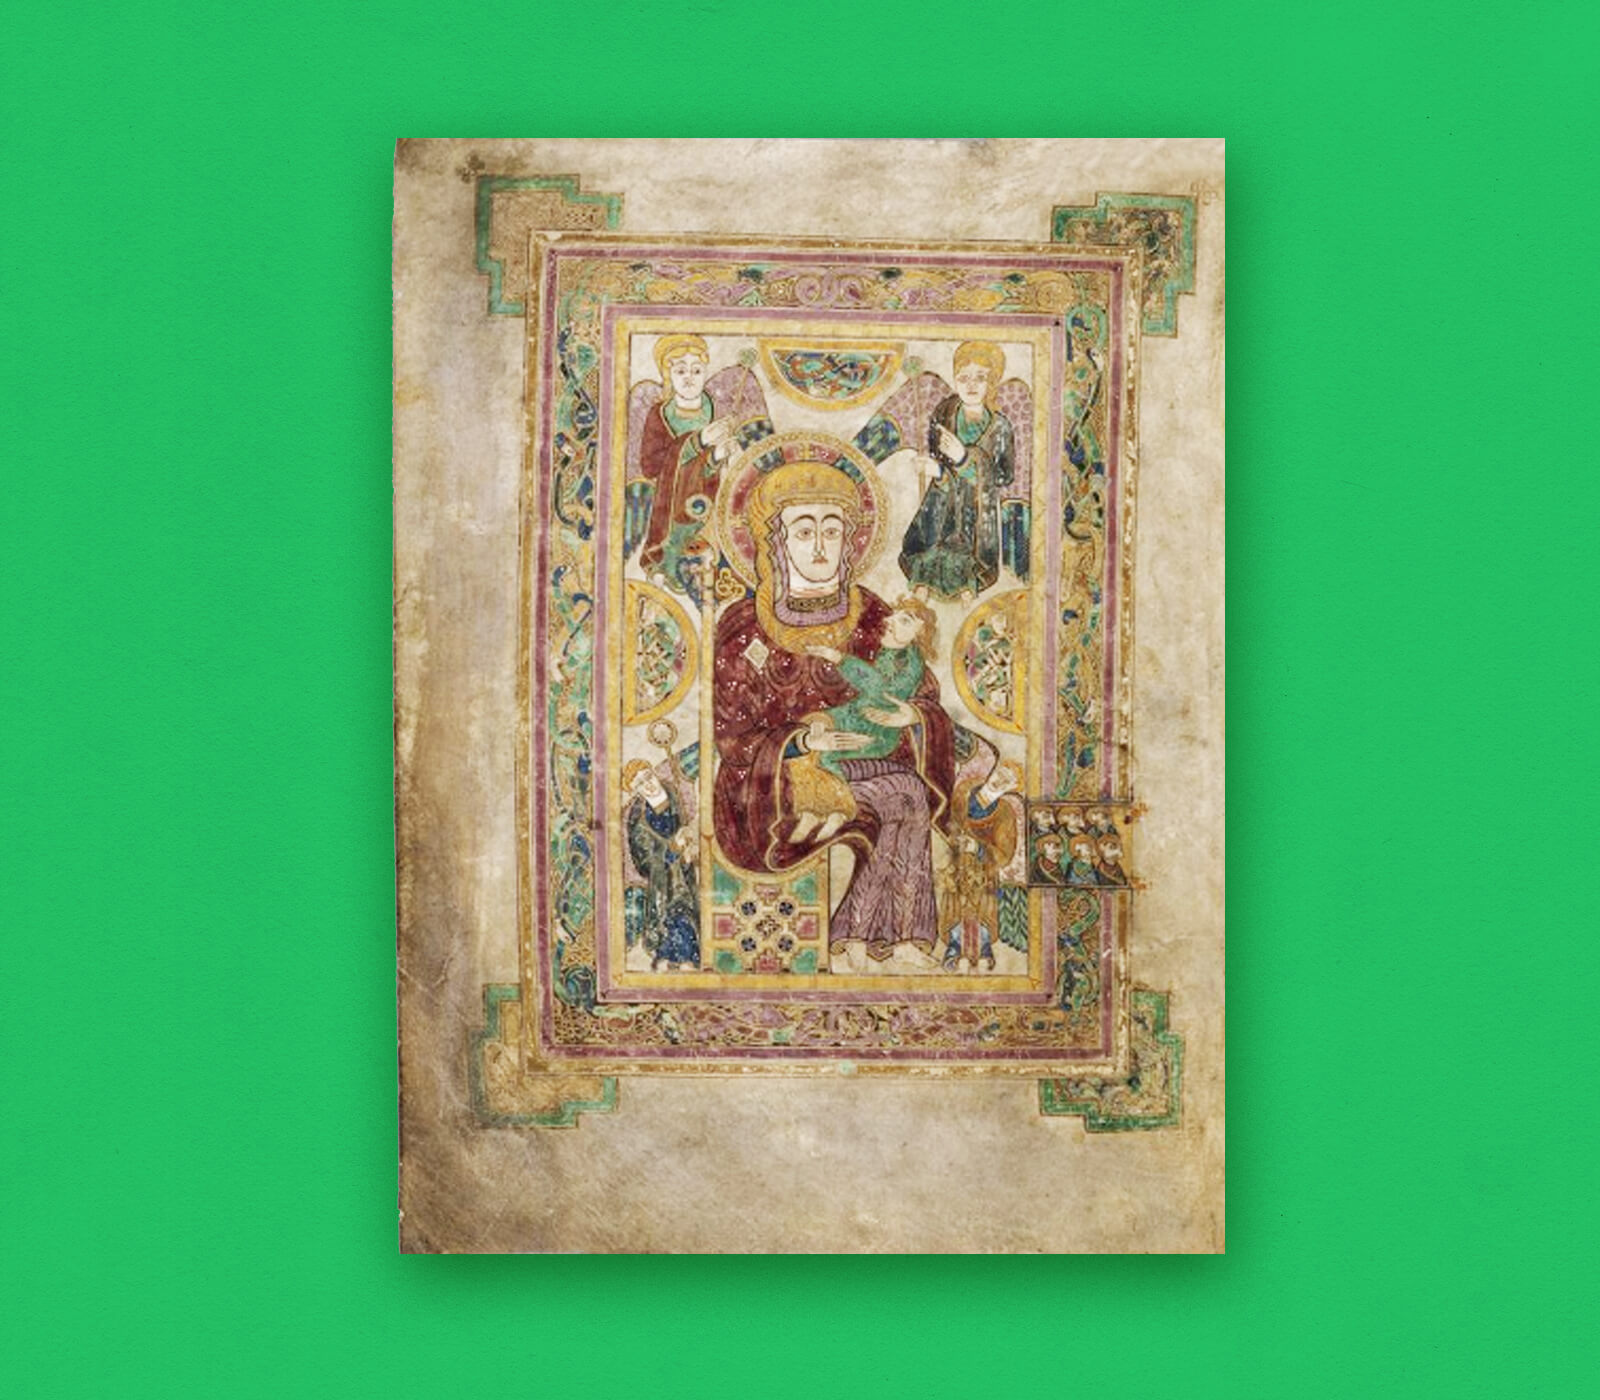 A page from the book of kells.